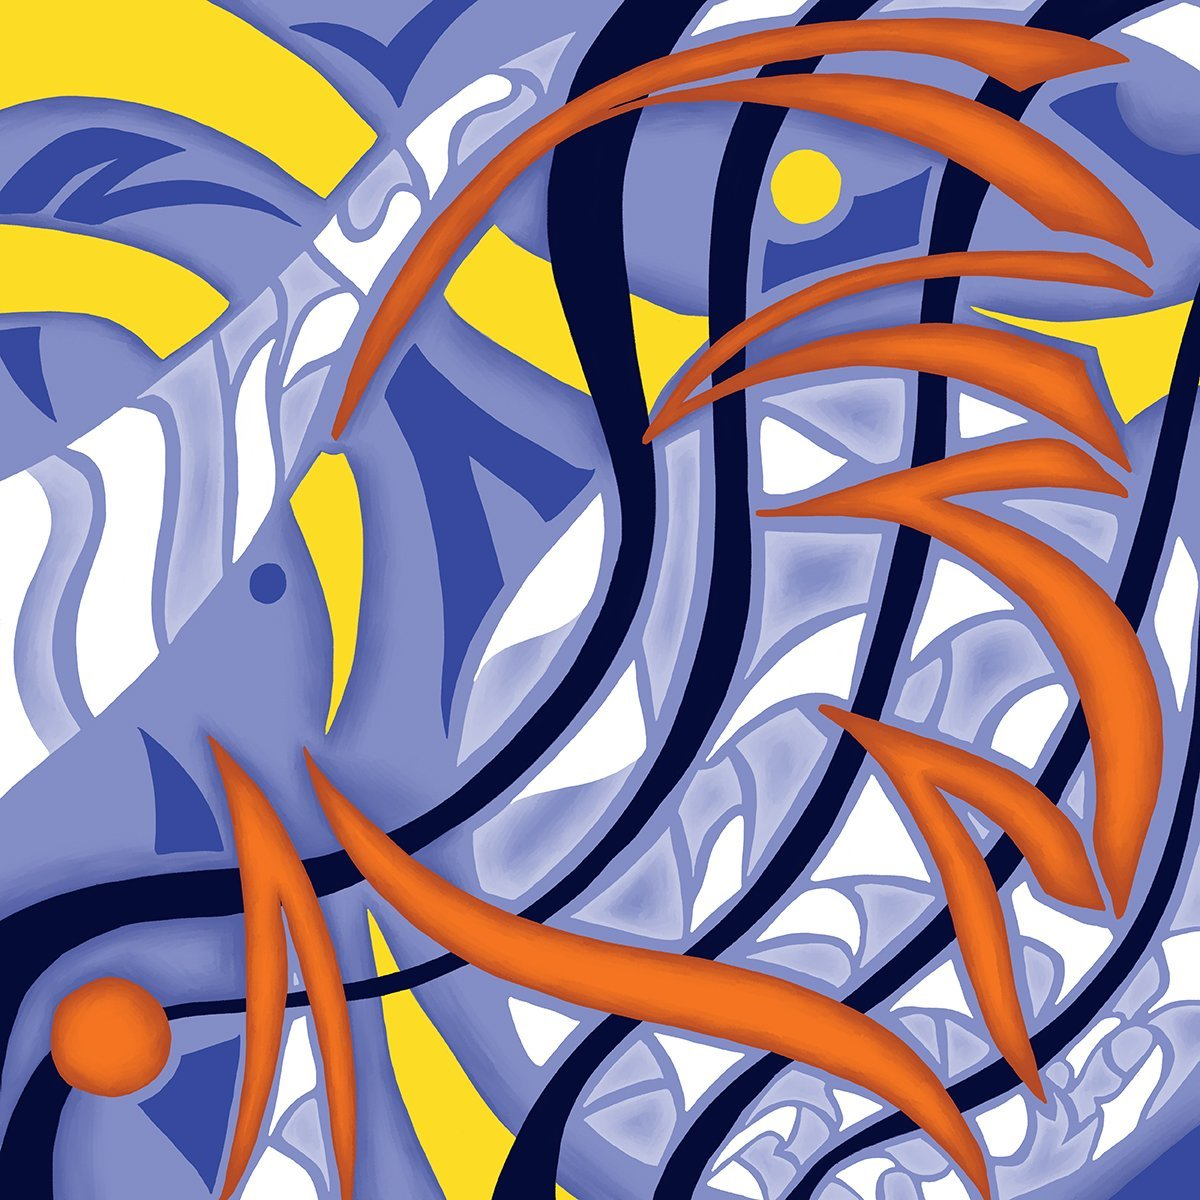 The image shows a piece of artwork by Jina Wallwork.It is a digital painting. Stylistically this piece of artwork has links with abstract art.